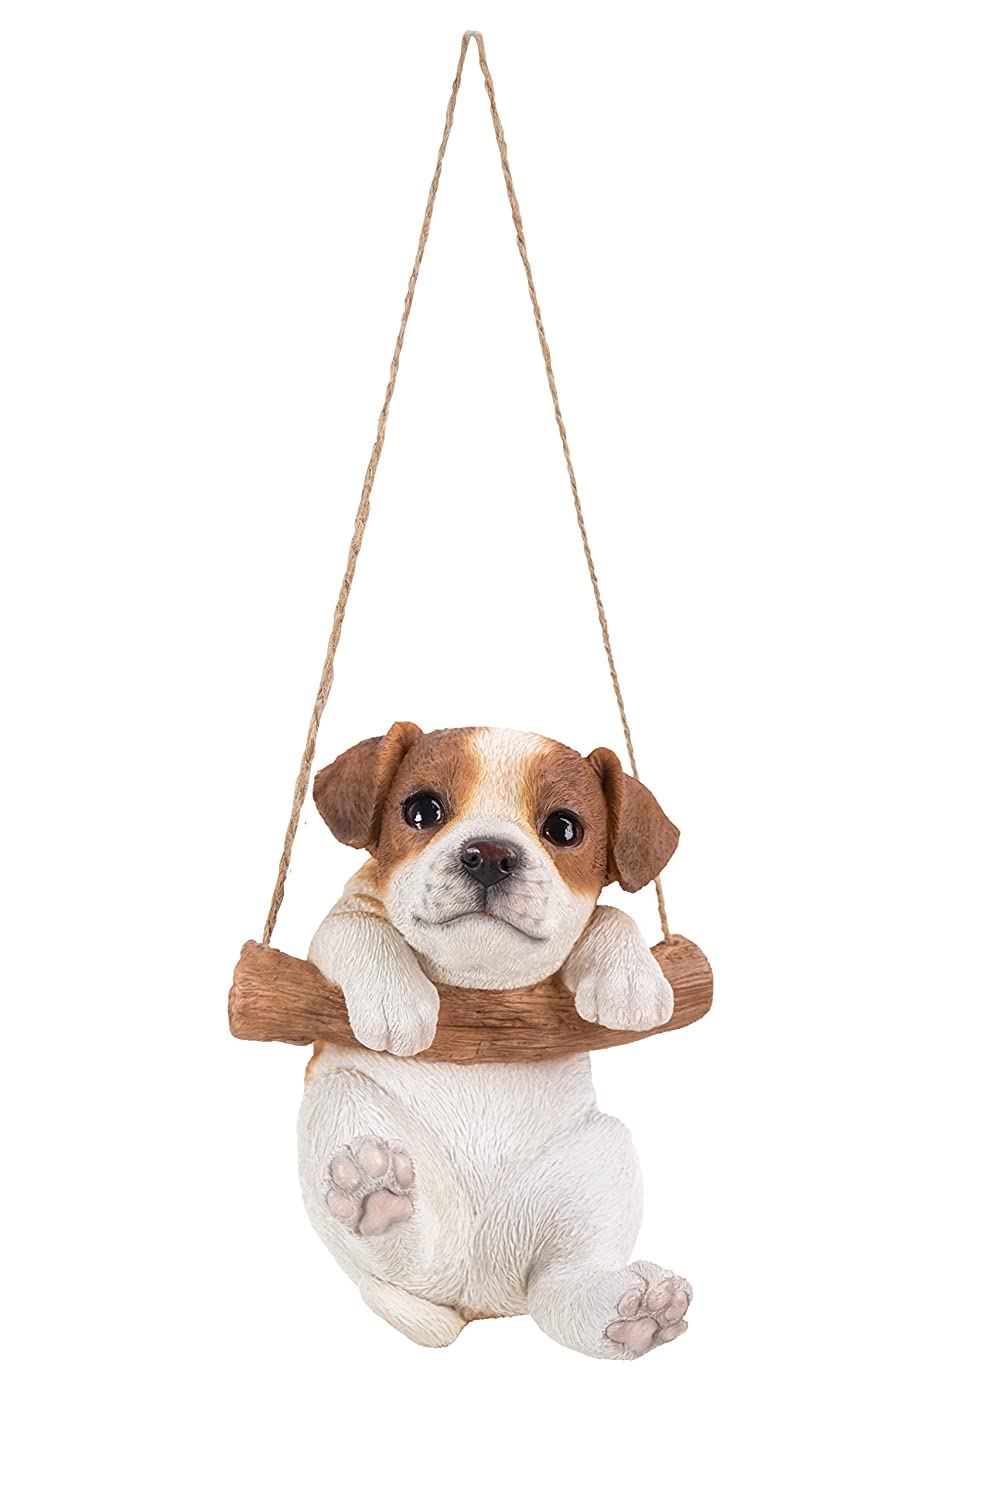 Hanging Jack Russell Terrier Puppy